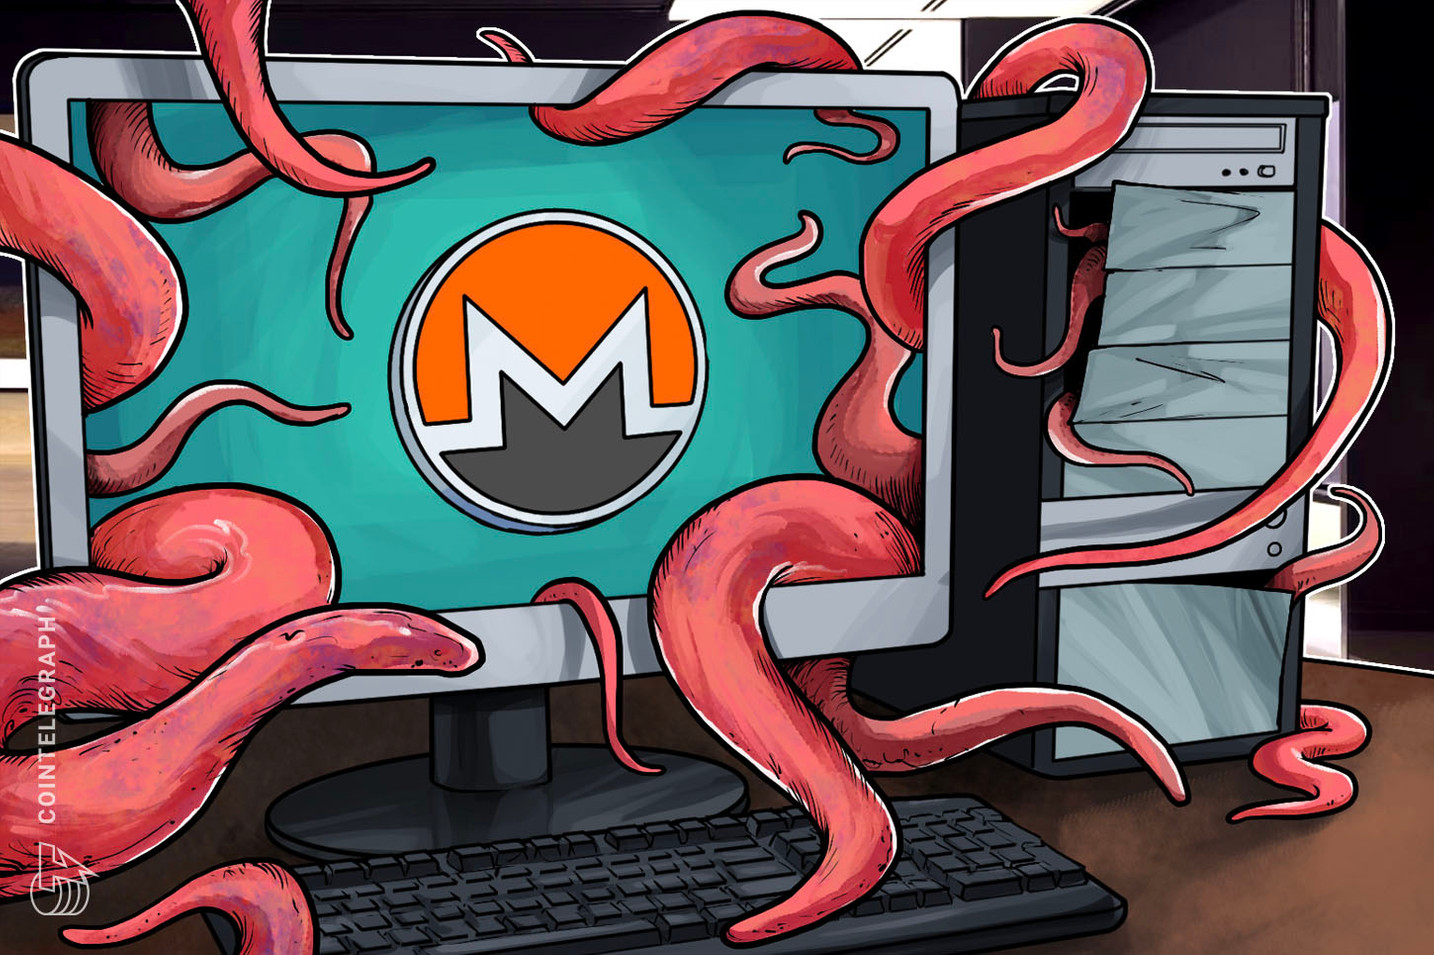 Researchers Find Monero Mining Malware That Hides From Task Manager